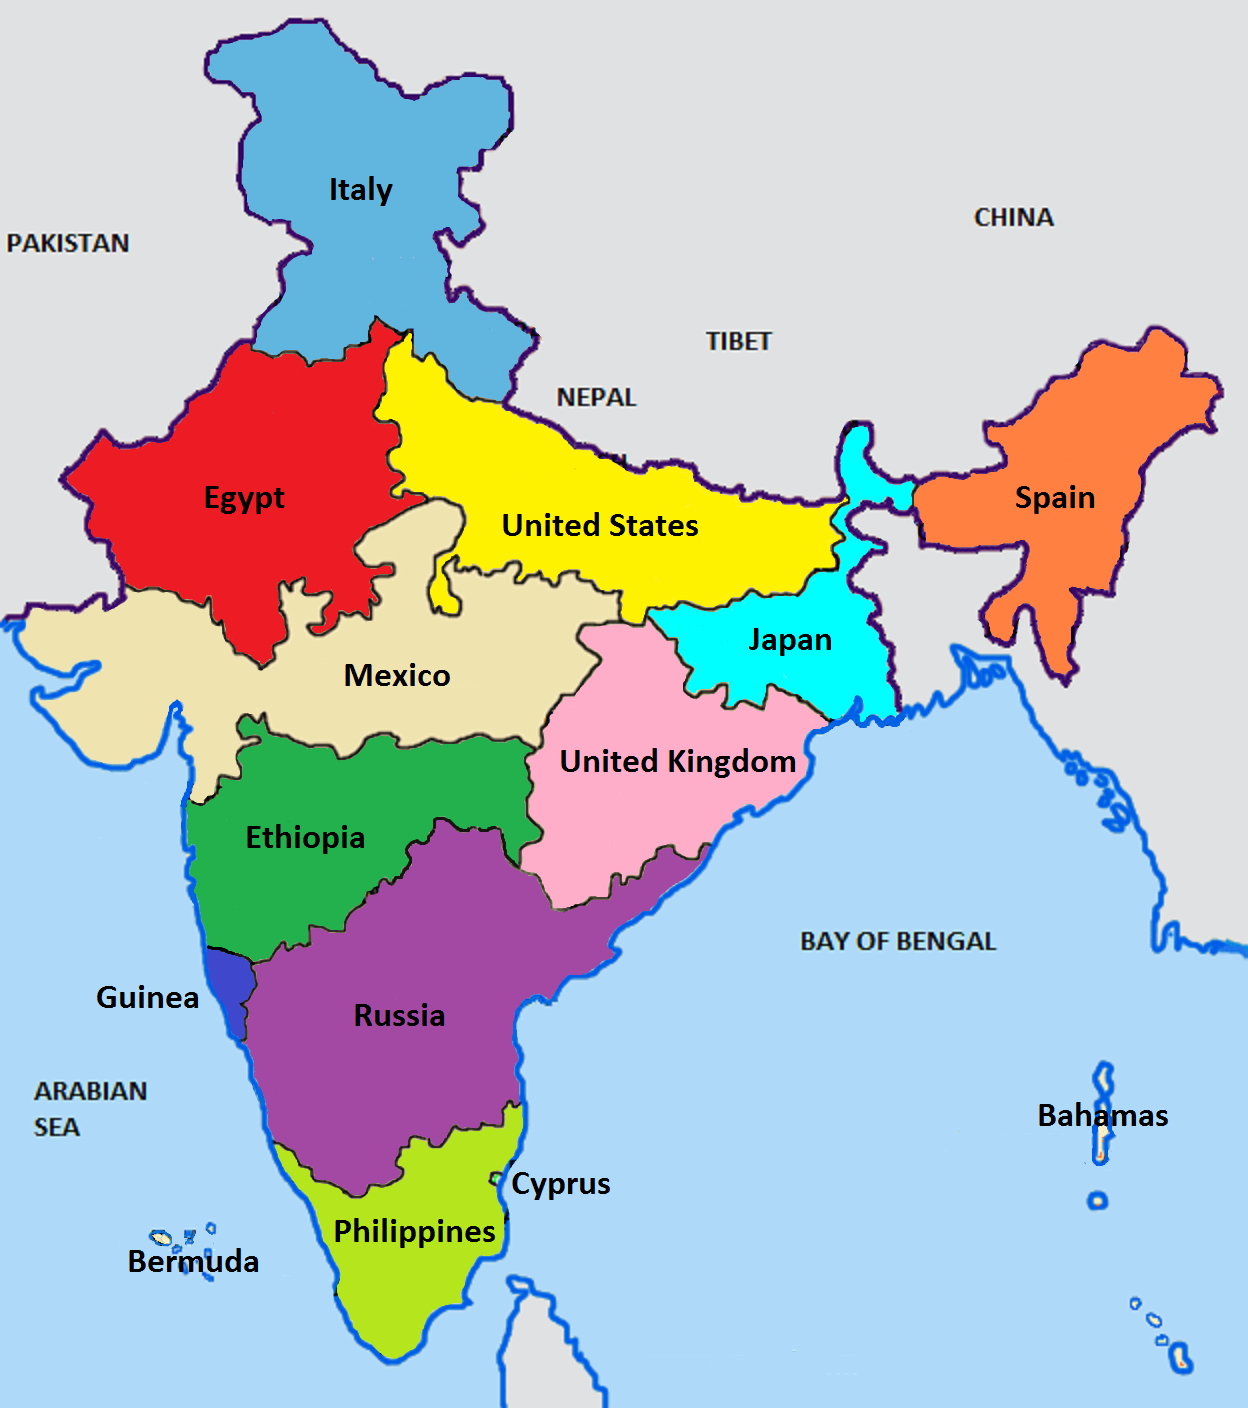 India's population compared with other countries